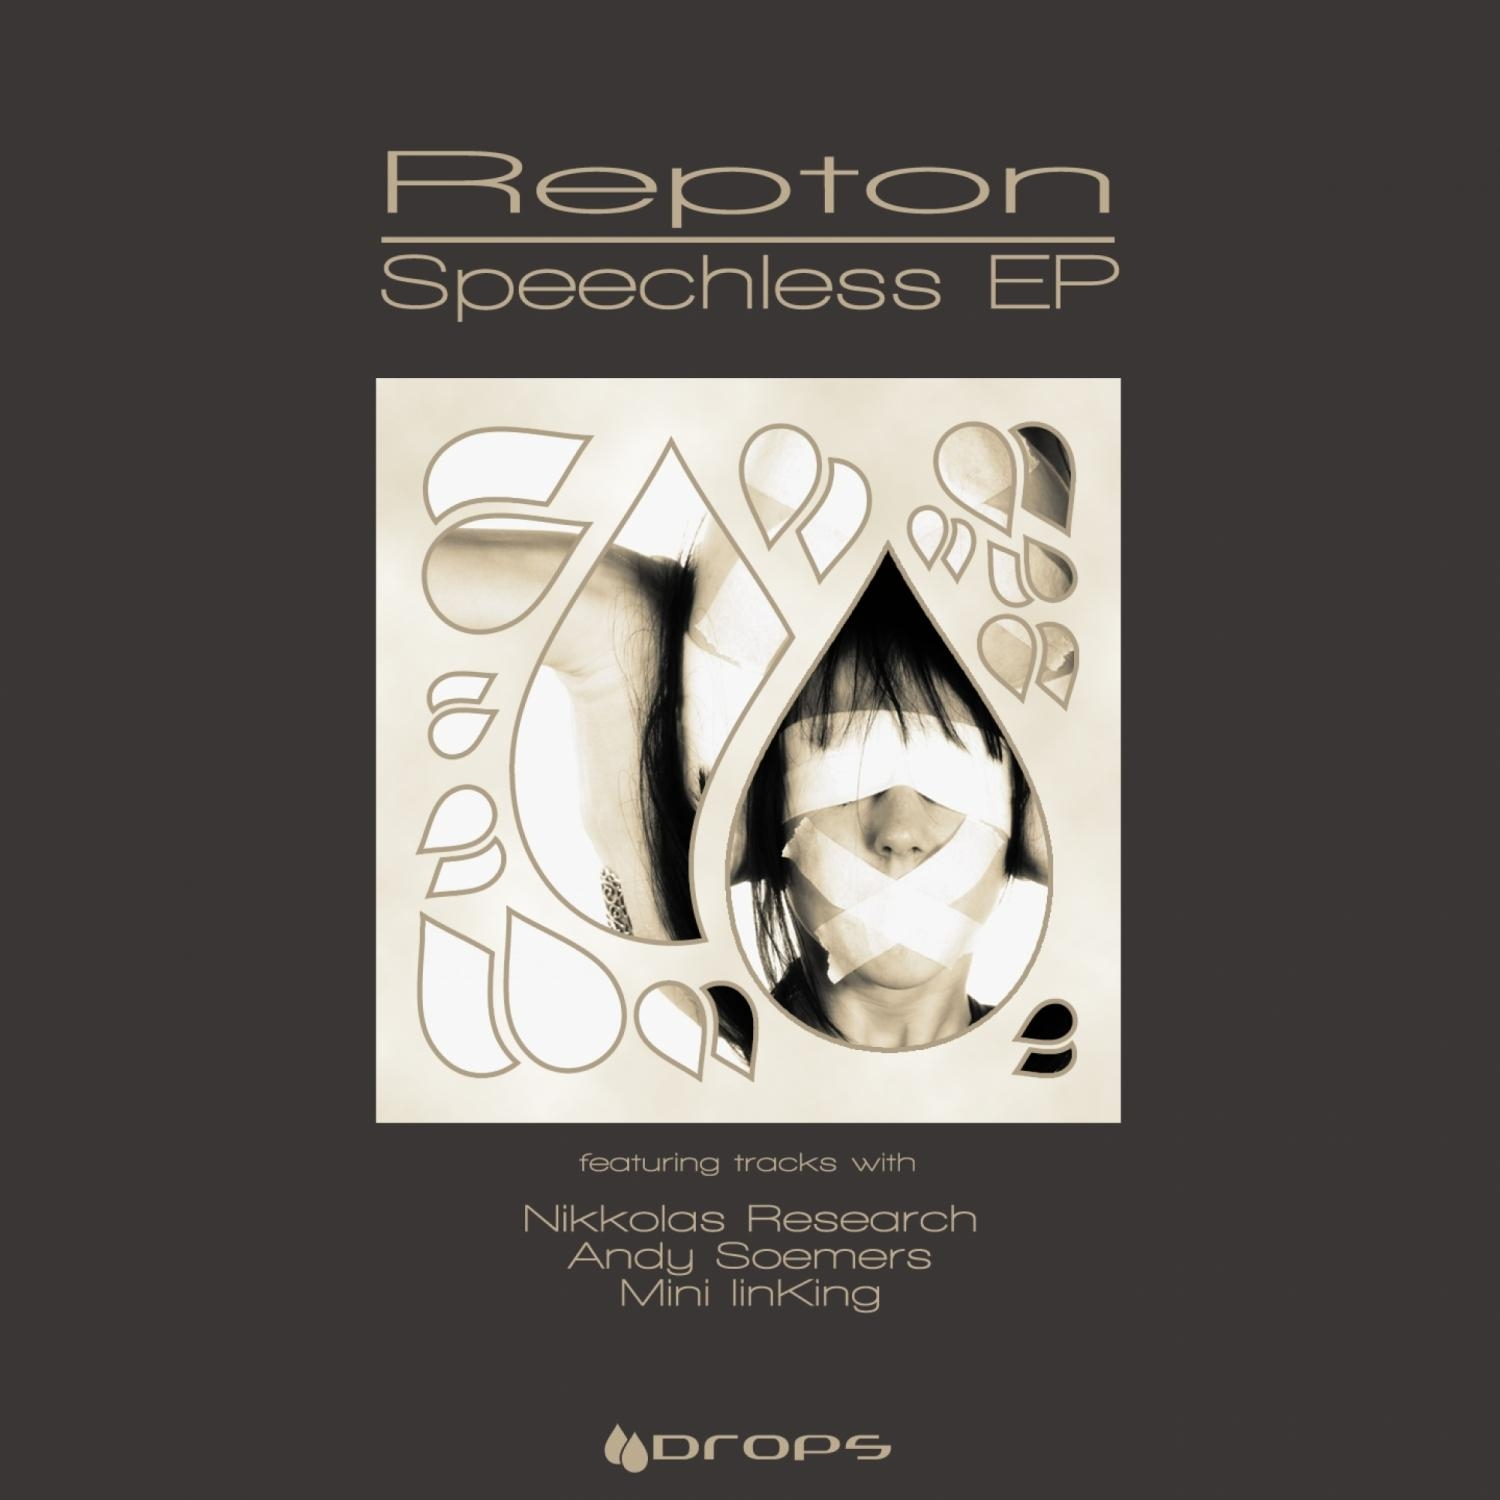 Repton, Andy Soemers - Face Control (Andy Soemers Remix)